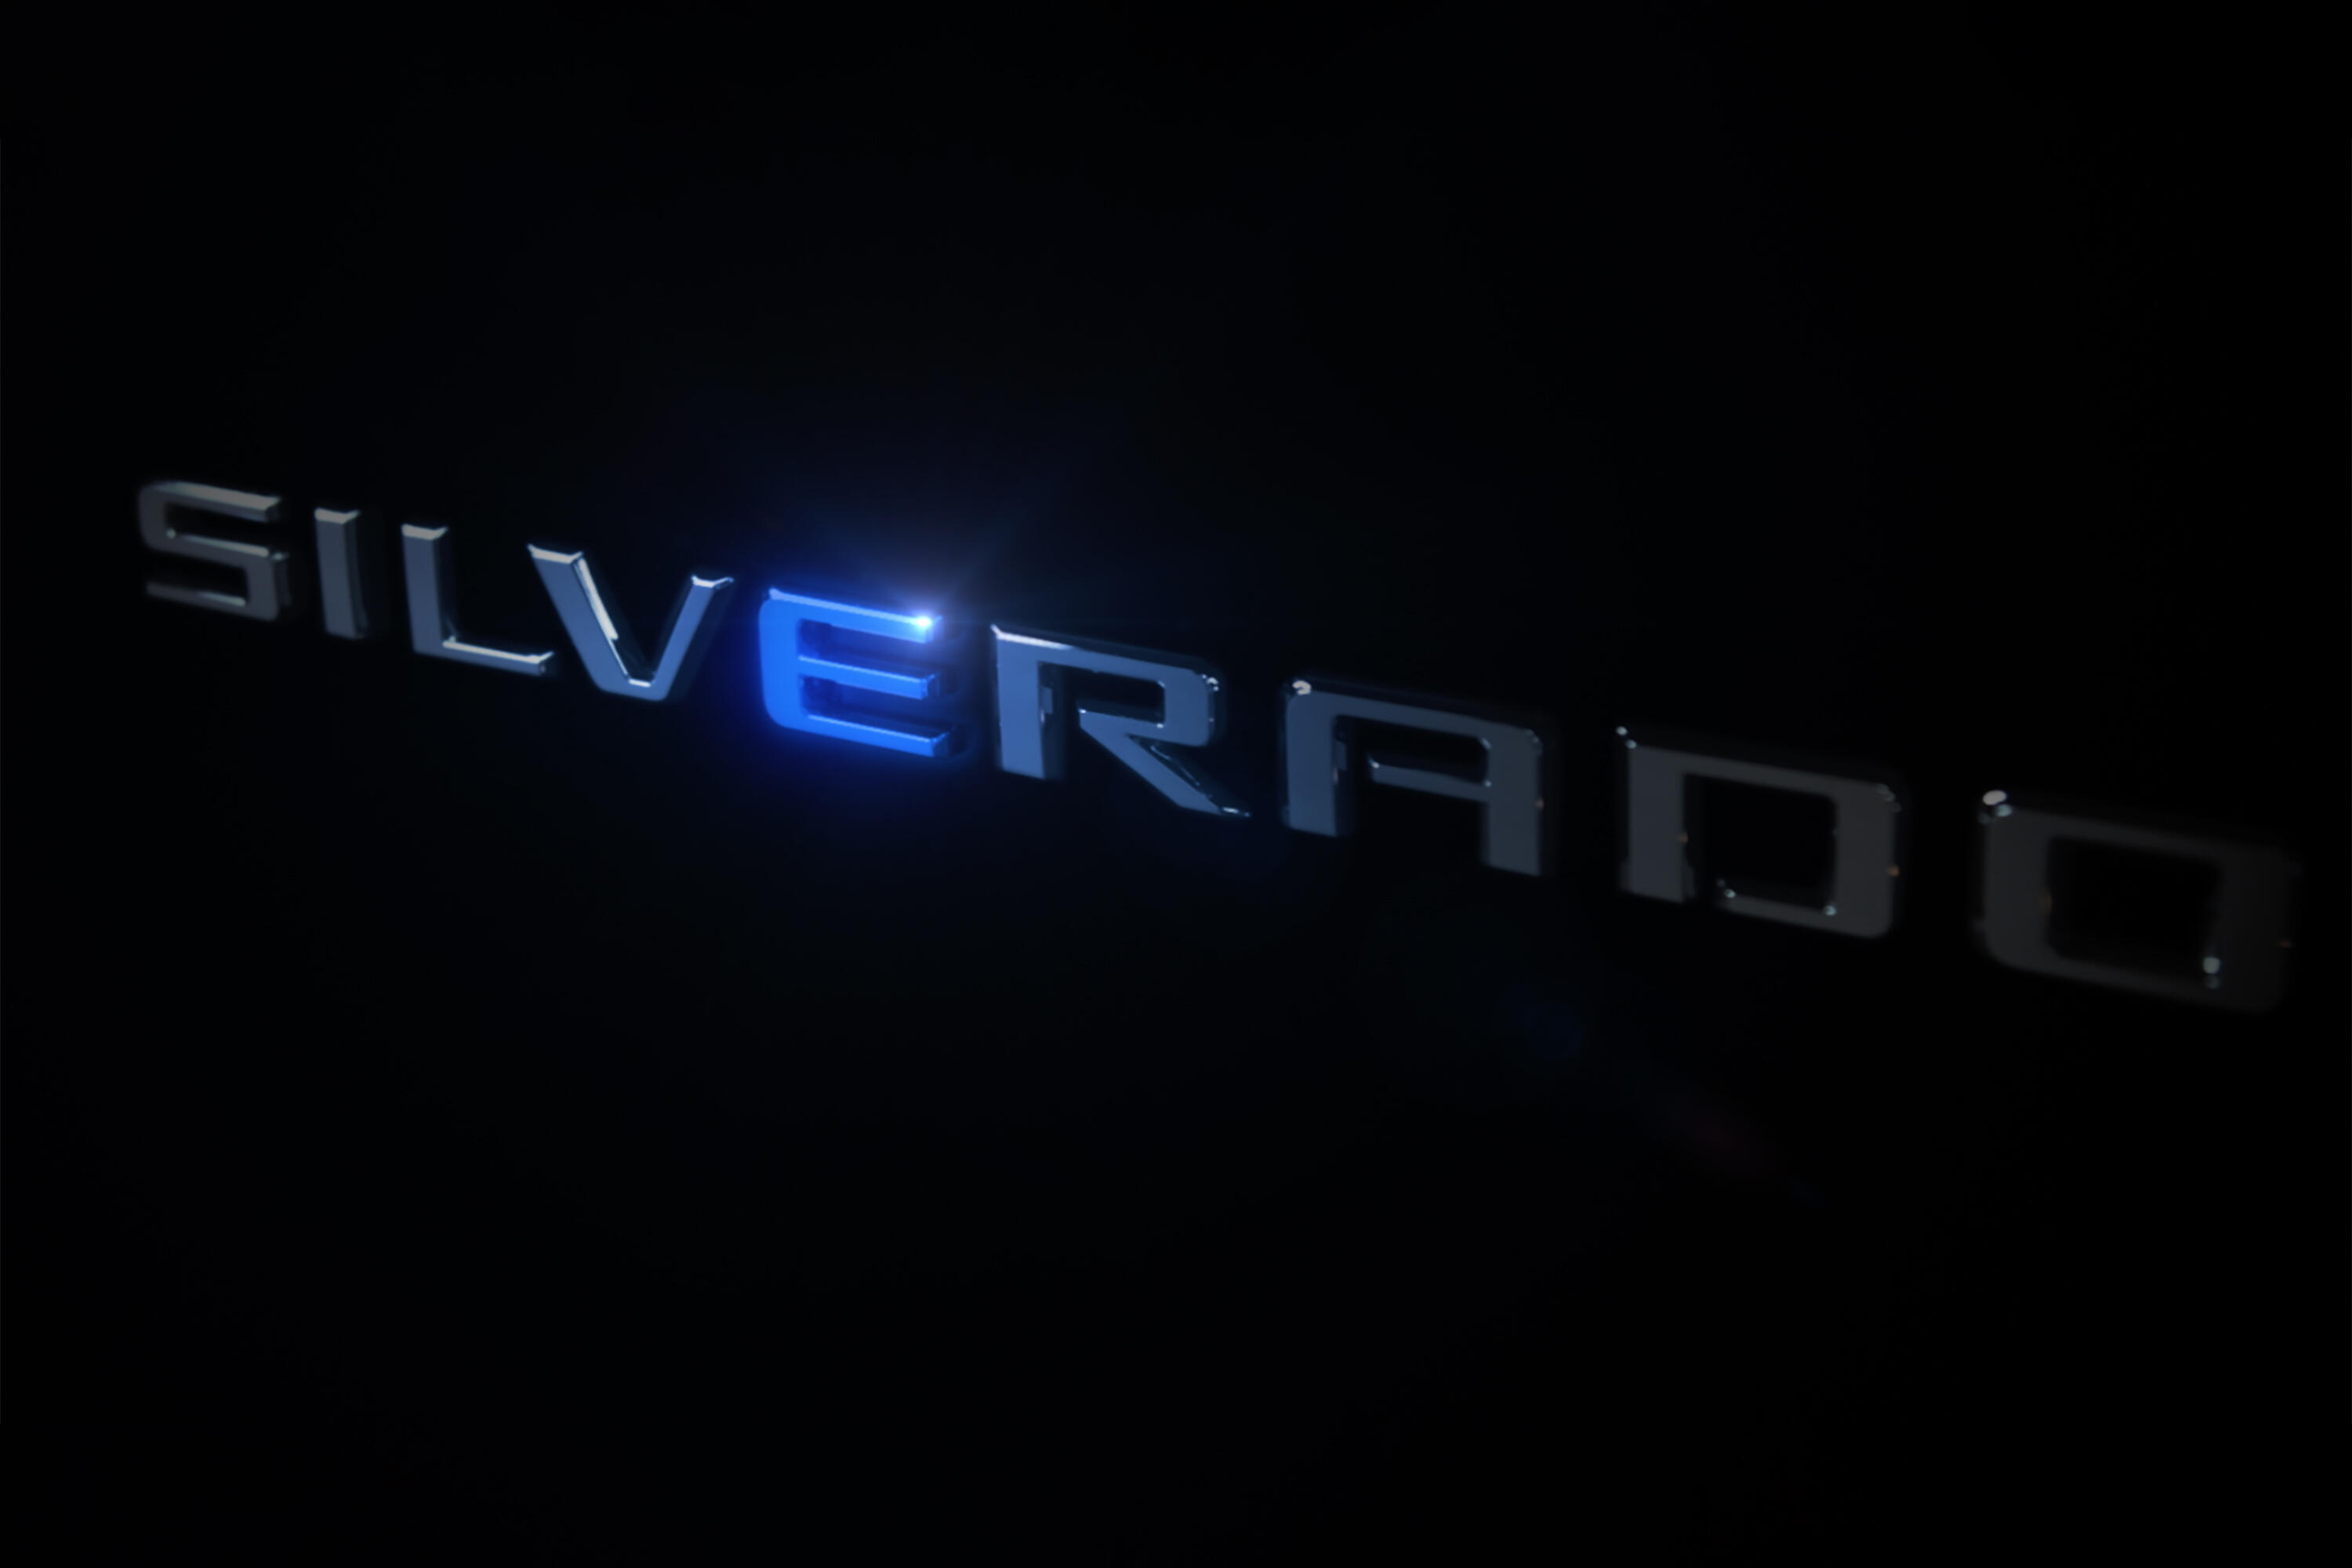 Electric Chevy Silverado teaser